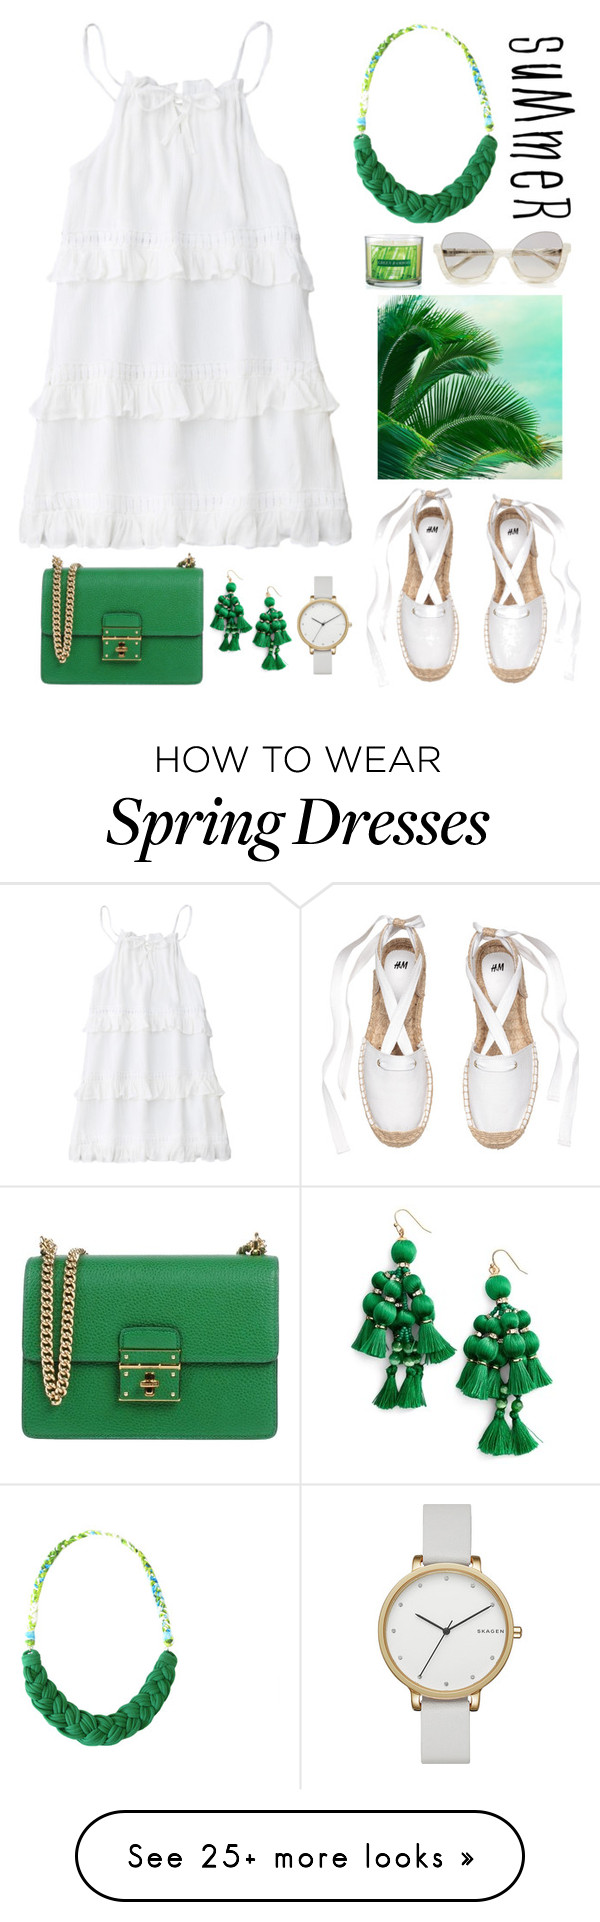 """White and Green"" by gicreazioni on Polyvore featuring Dolce&Gabbana, Kate Spade, Avon, Skagen, etsy, necklace and handmade"